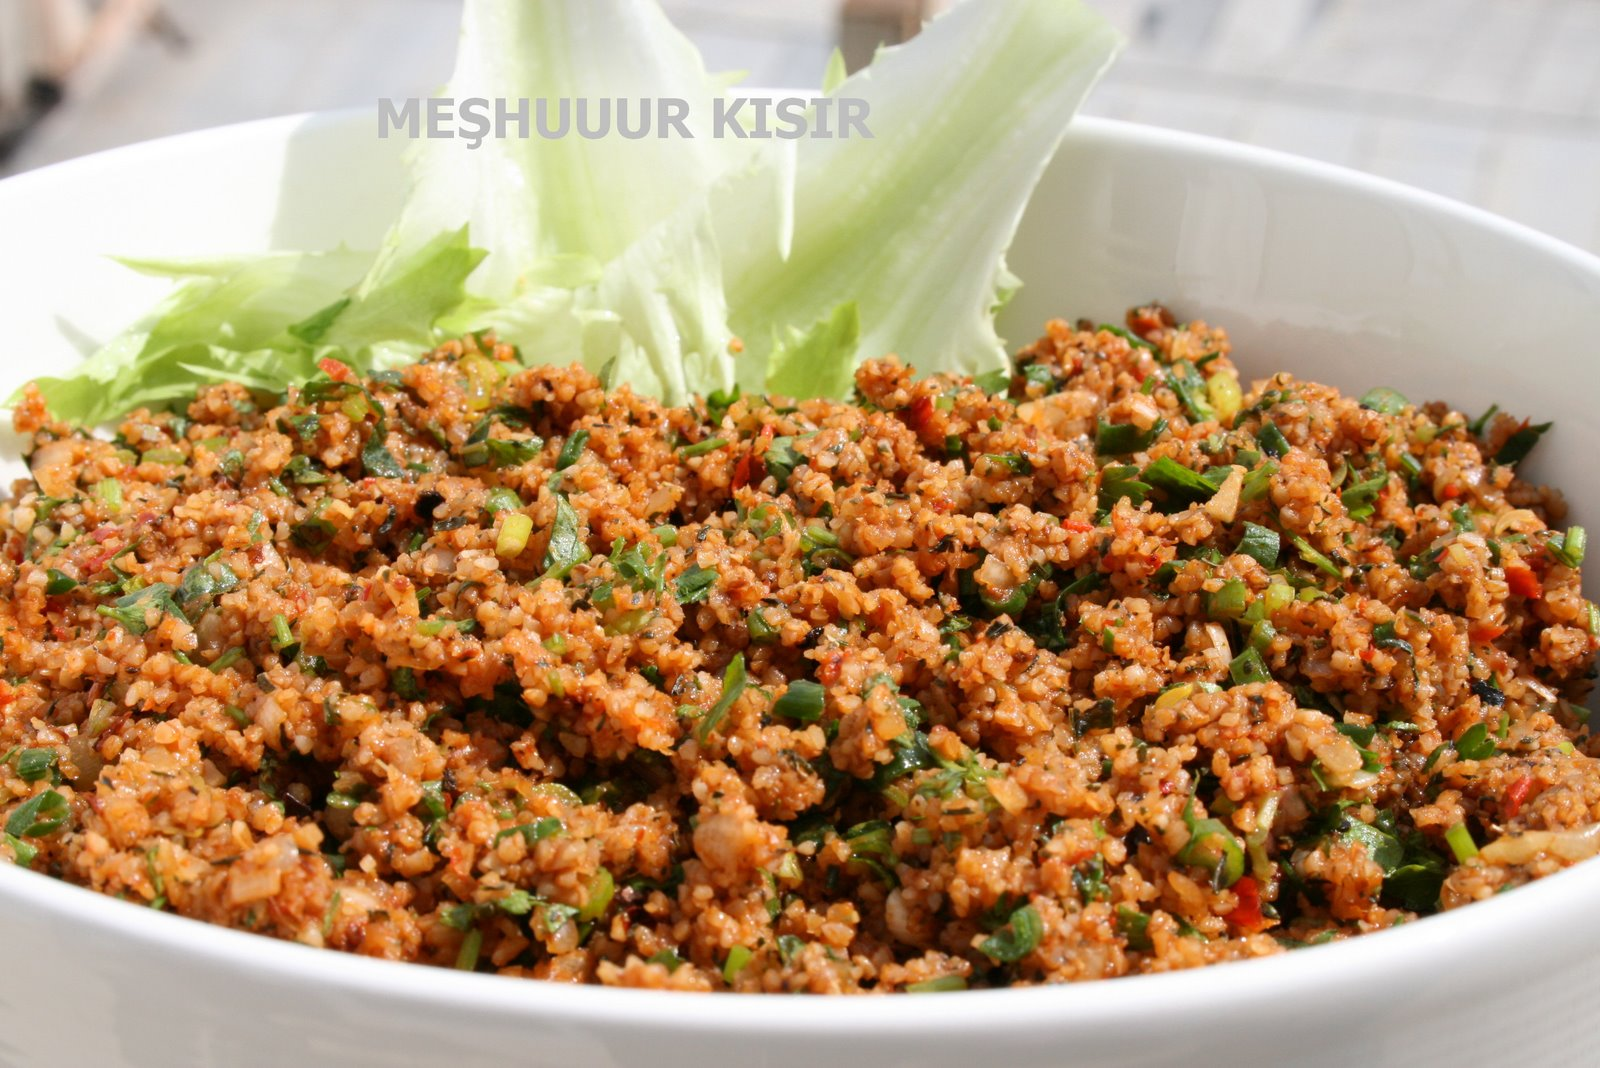 Kisir bulgur my most favorite recipe among turkish - Cuisine r evolution recipes ...